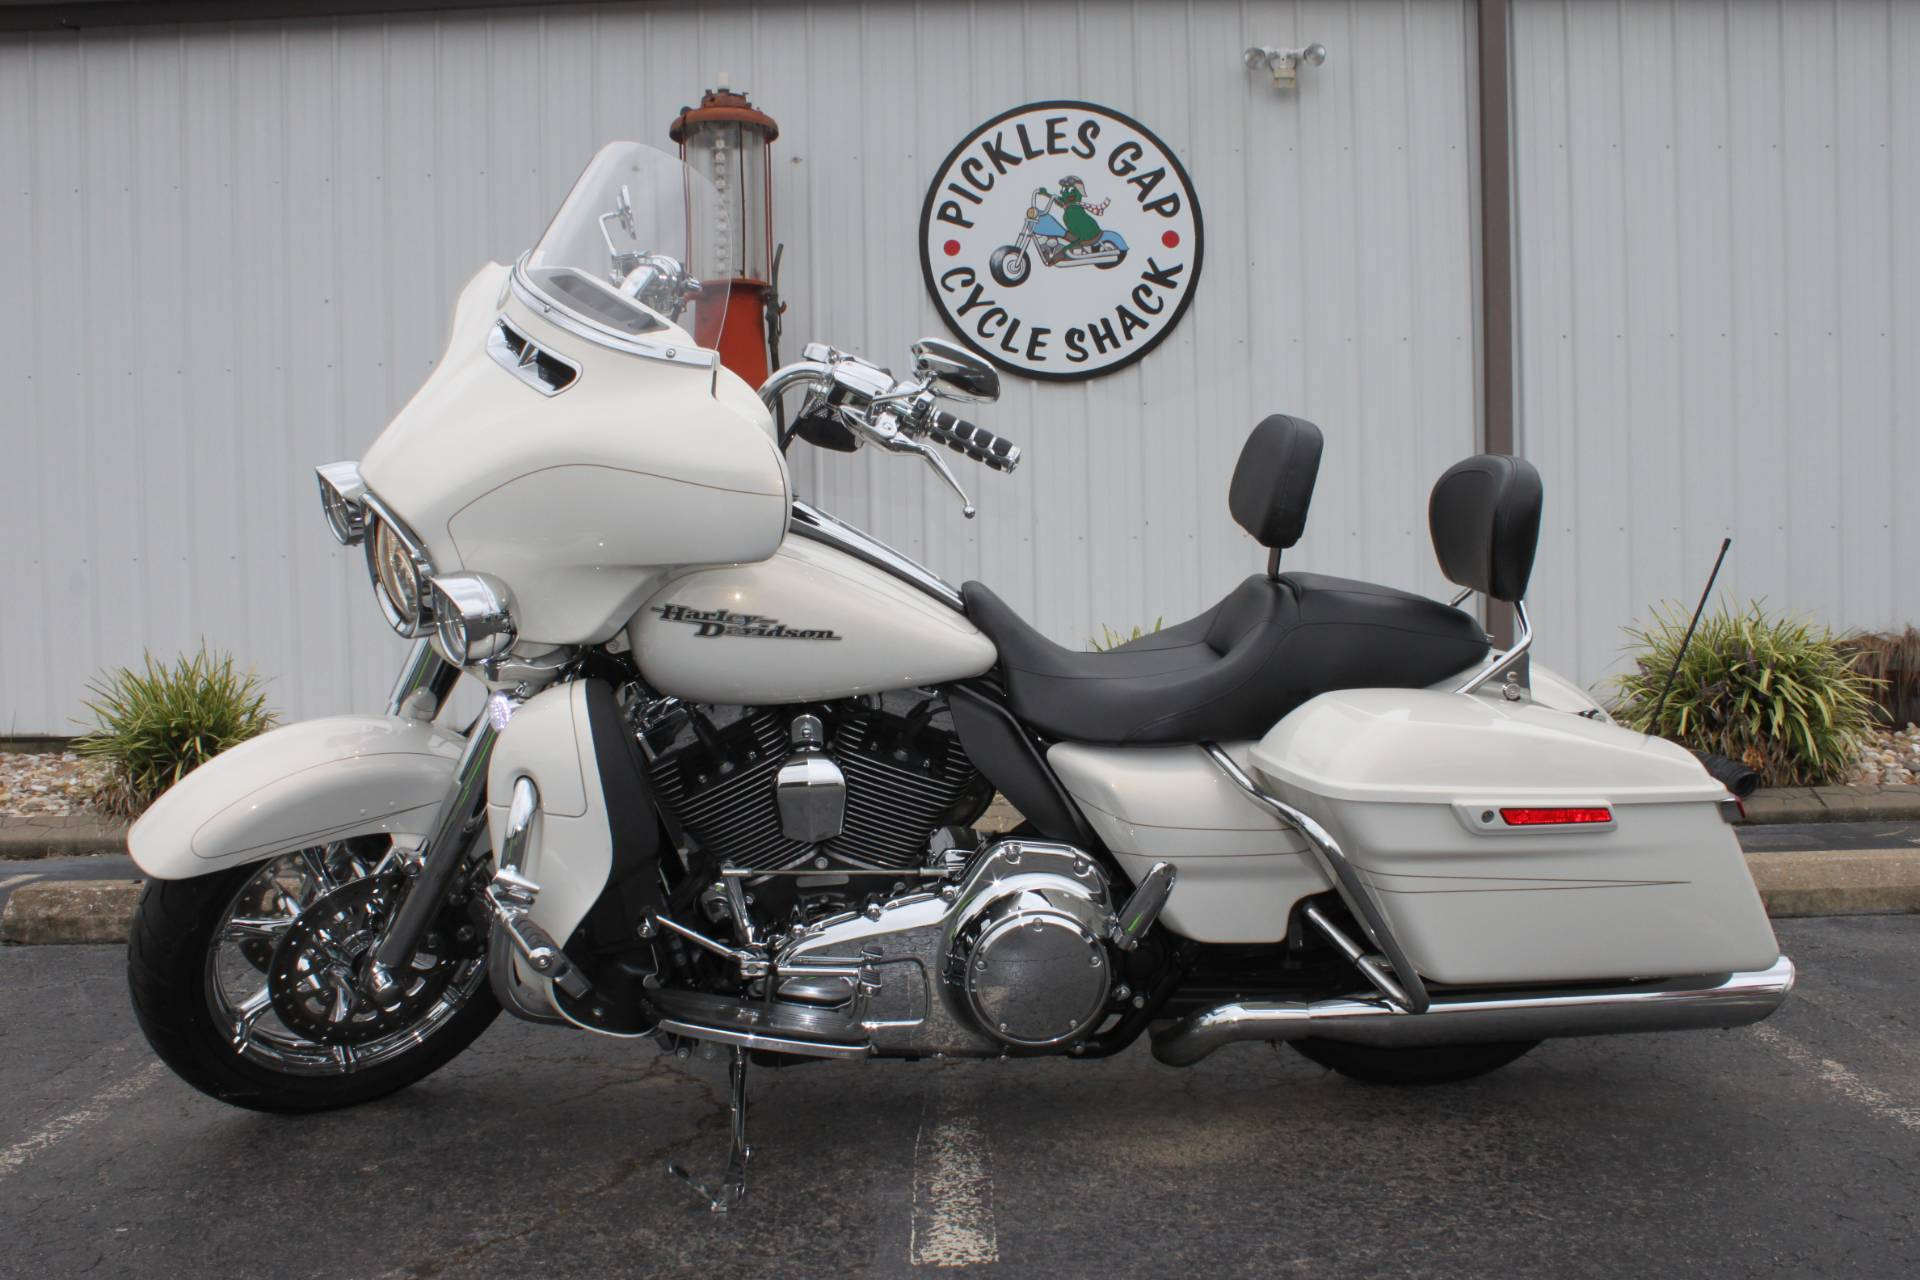 2014 Harley-Davidson FLHX STREET GLIDE in Greenbrier, Arkansas - Photo 12